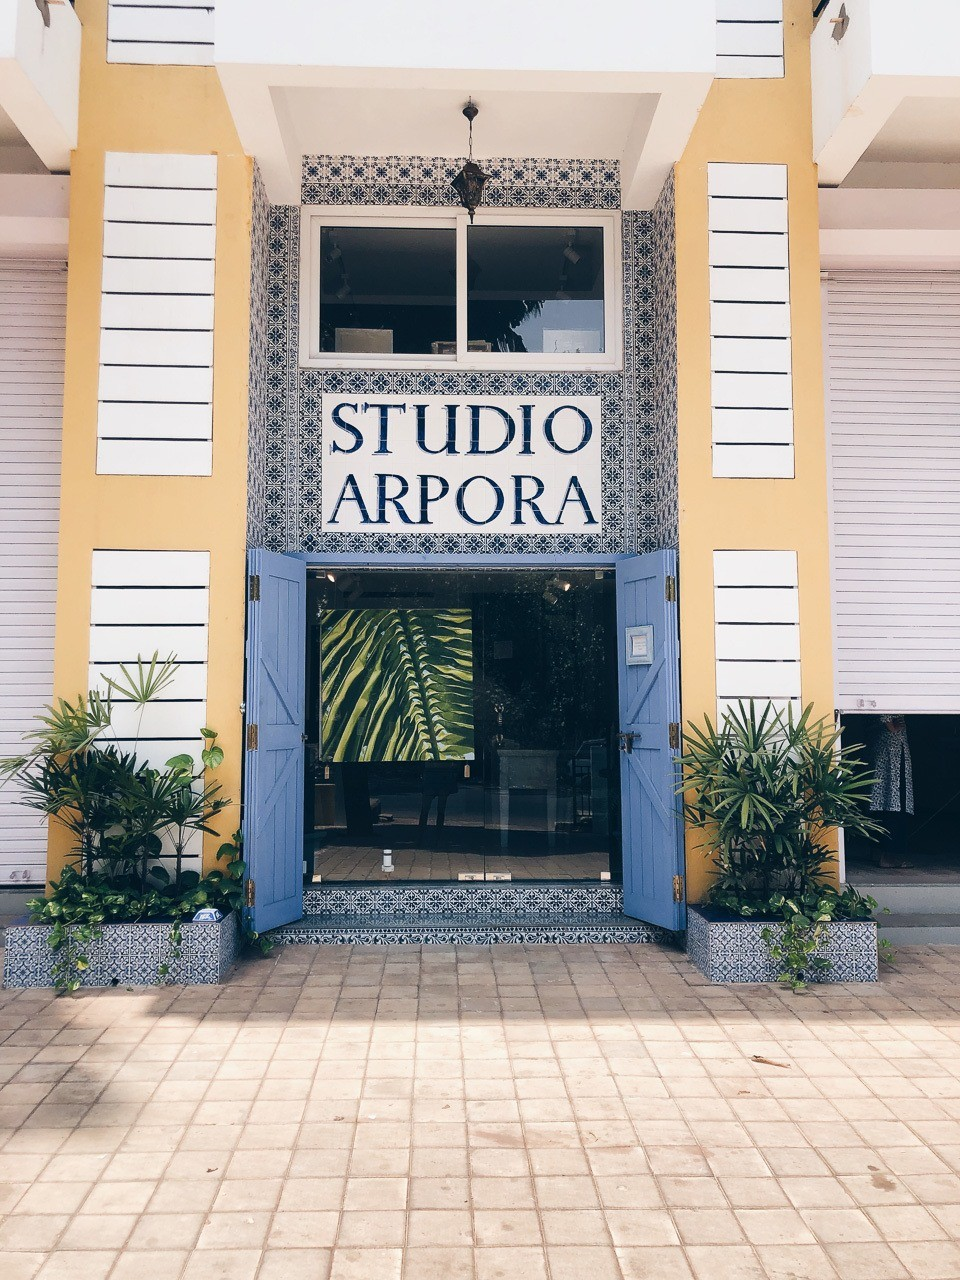 studio arpora goa, india